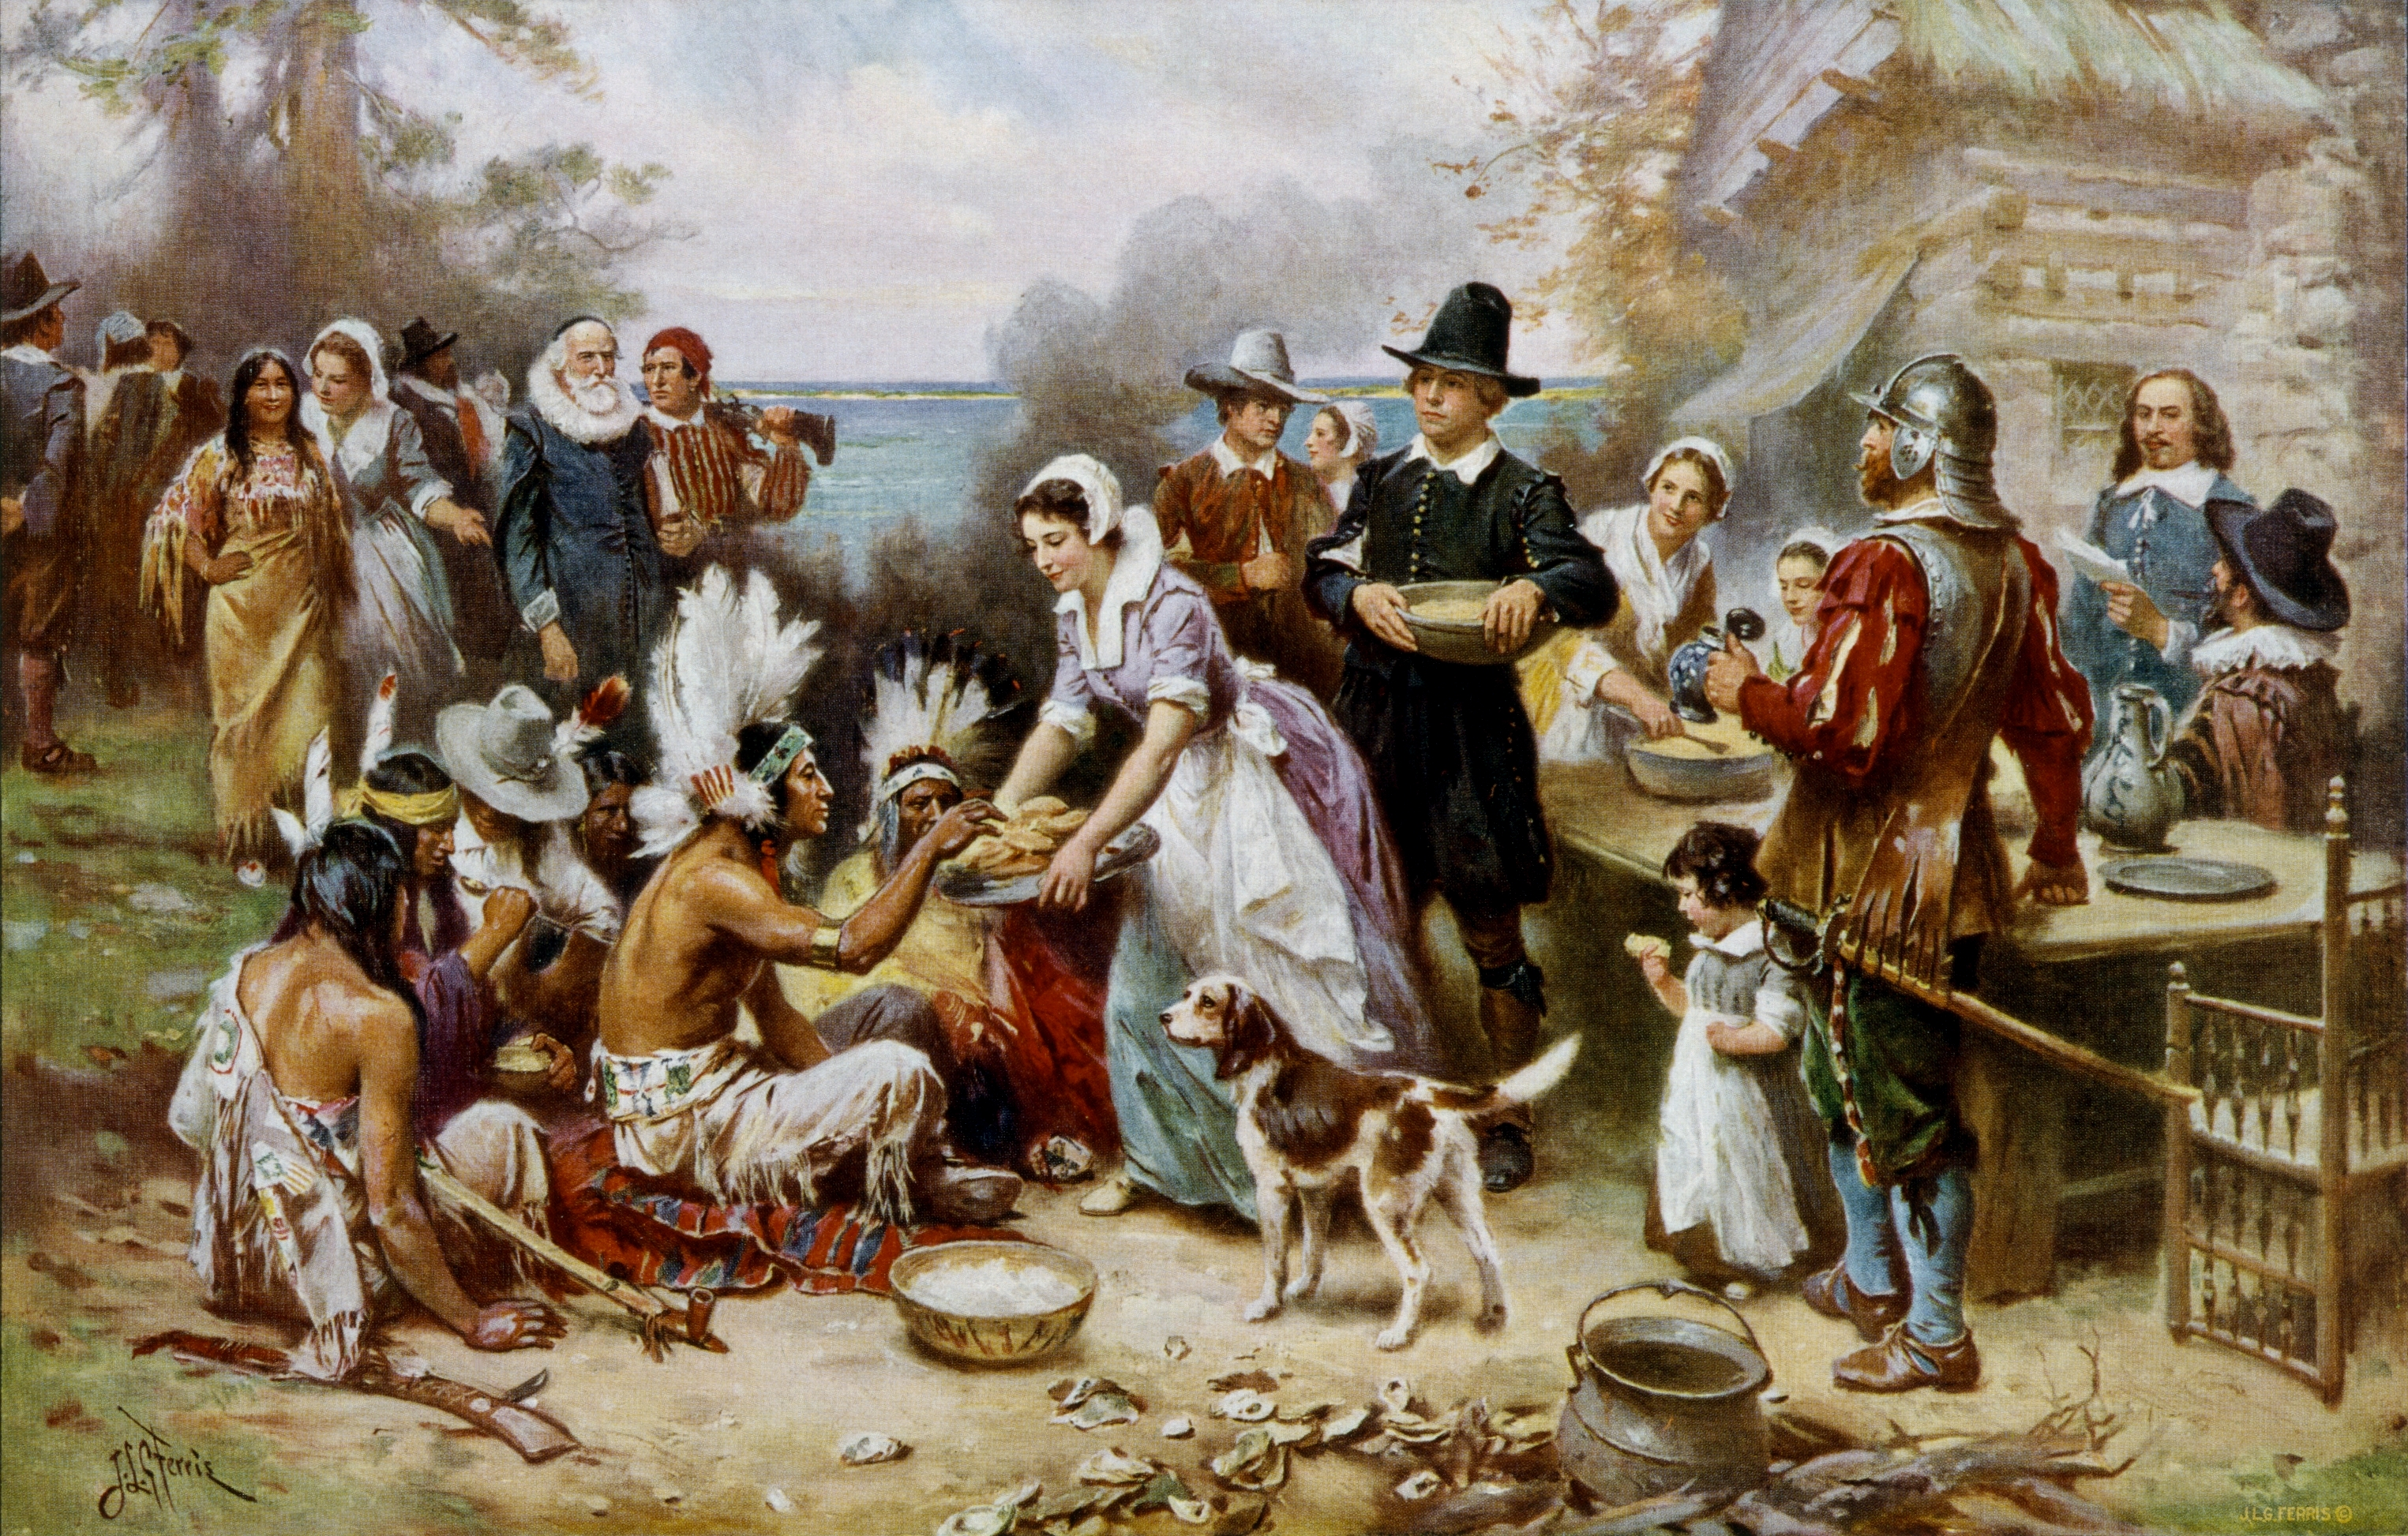 https://i1.wp.com/upload.wikimedia.org/wikipedia/commons/6/6e/The_First_Thanksgiving_cph.3g04961.jpg